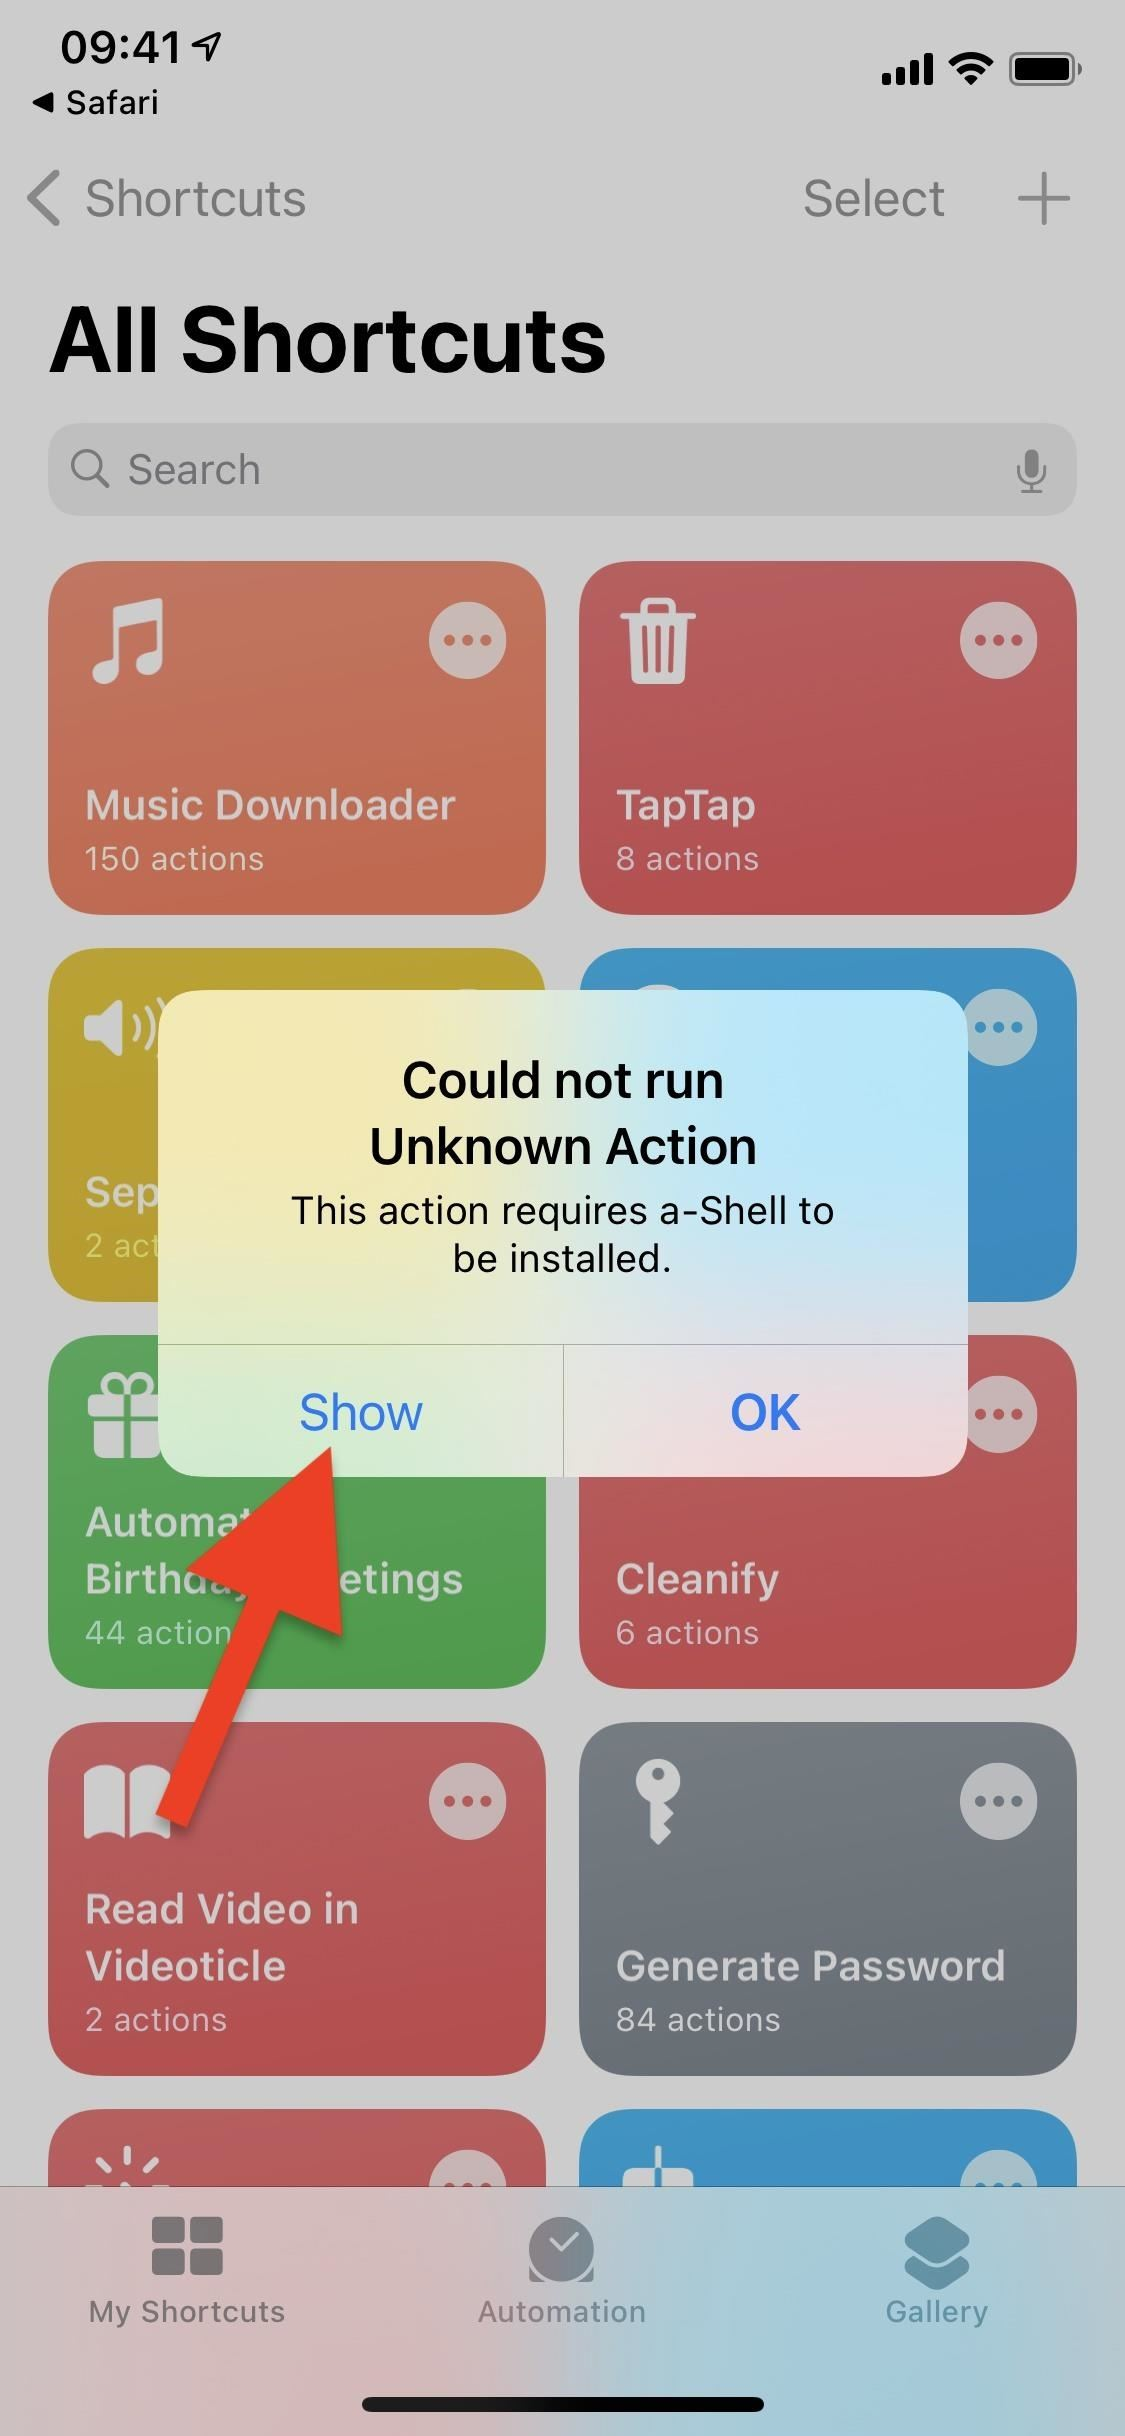 This iOS shortcut will find and download free songs that you can listen to offline on your iPhone